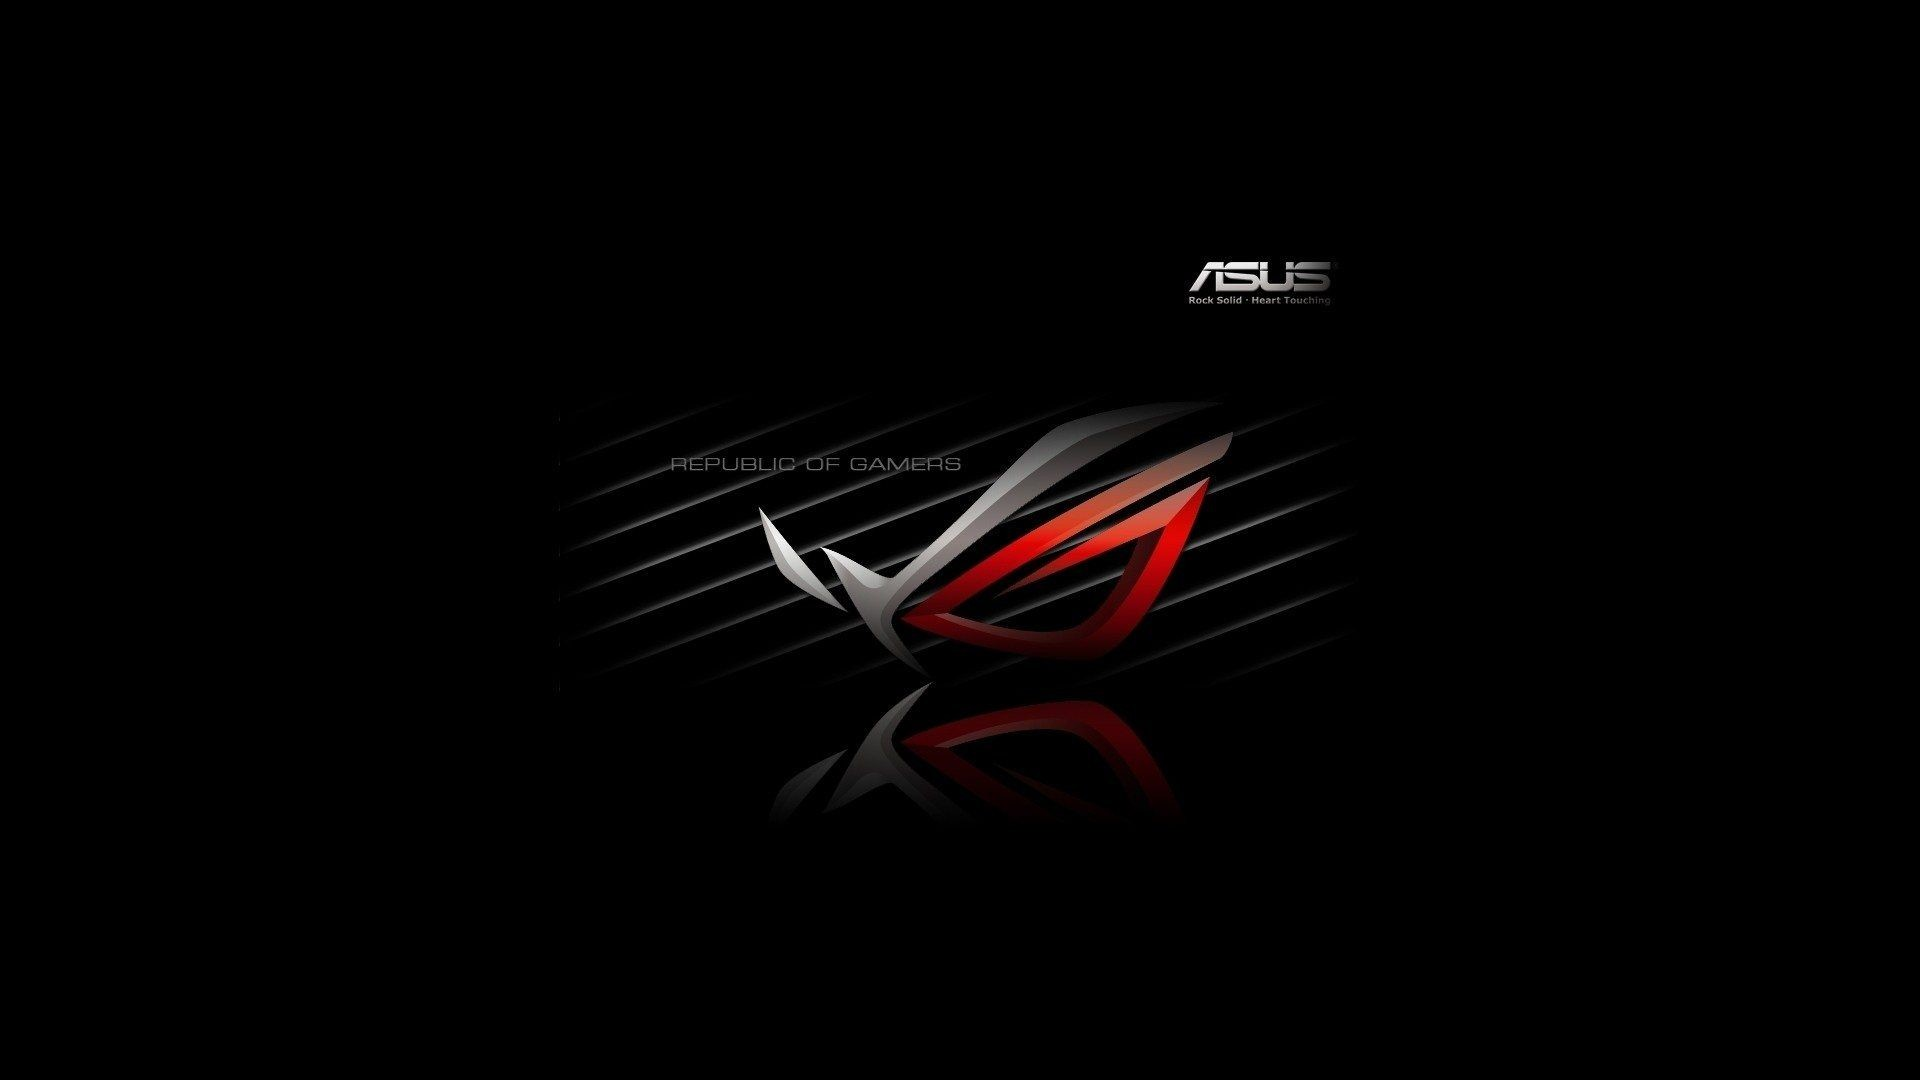 Download ASUS ROG Phone Wallpapers, Live Wallpaper, and Theme |Rog Wallpaper 1920x1080